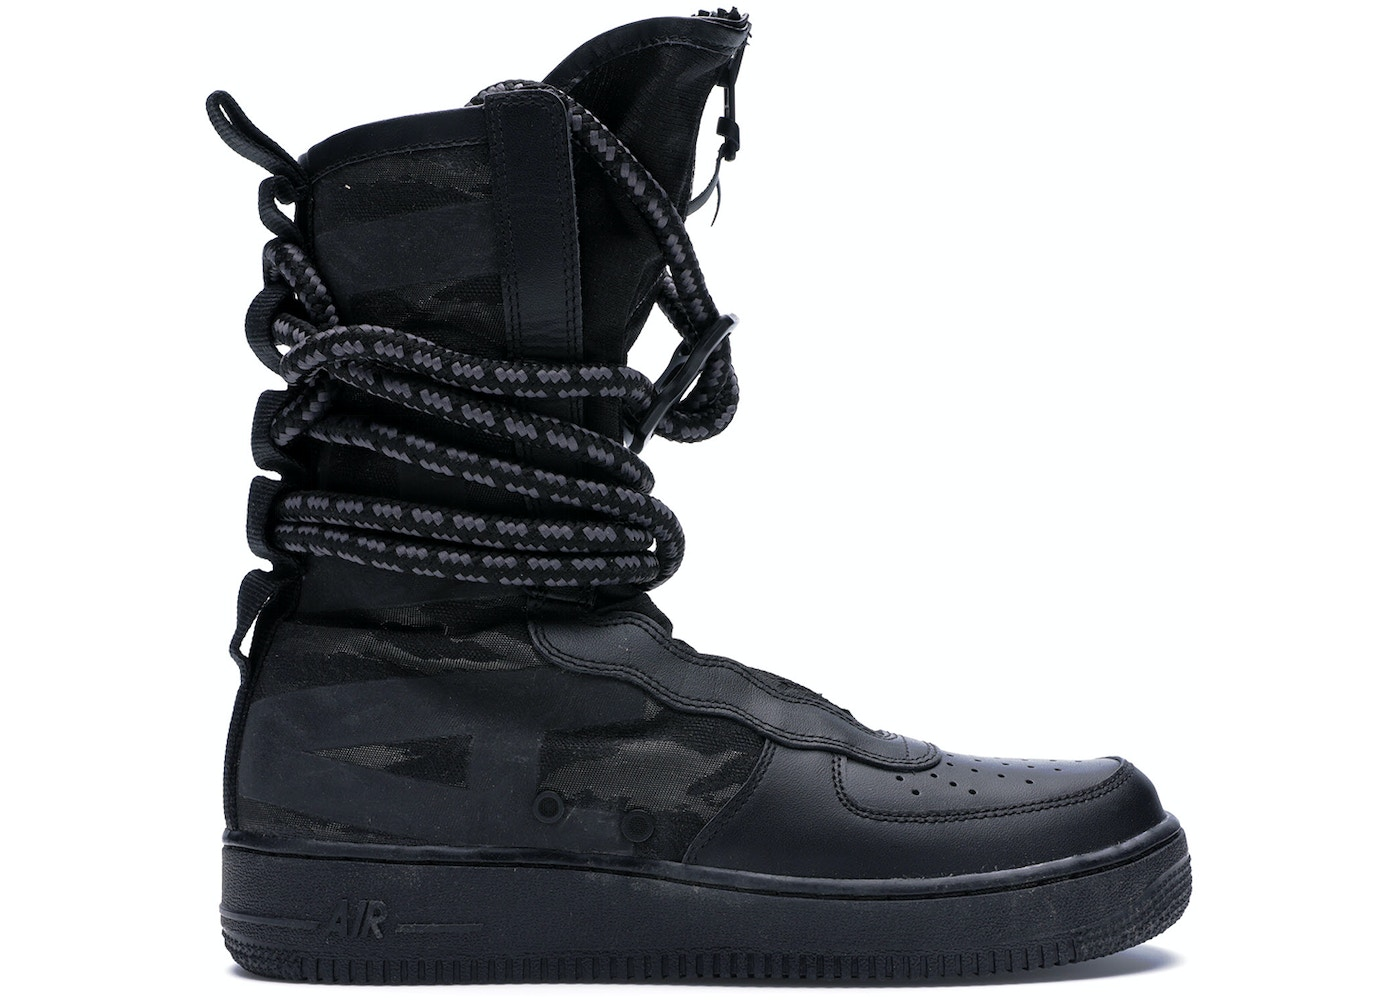 promo code cc28c 65110 Buy Nike Air Force Shoes   Deadstock Sneakers